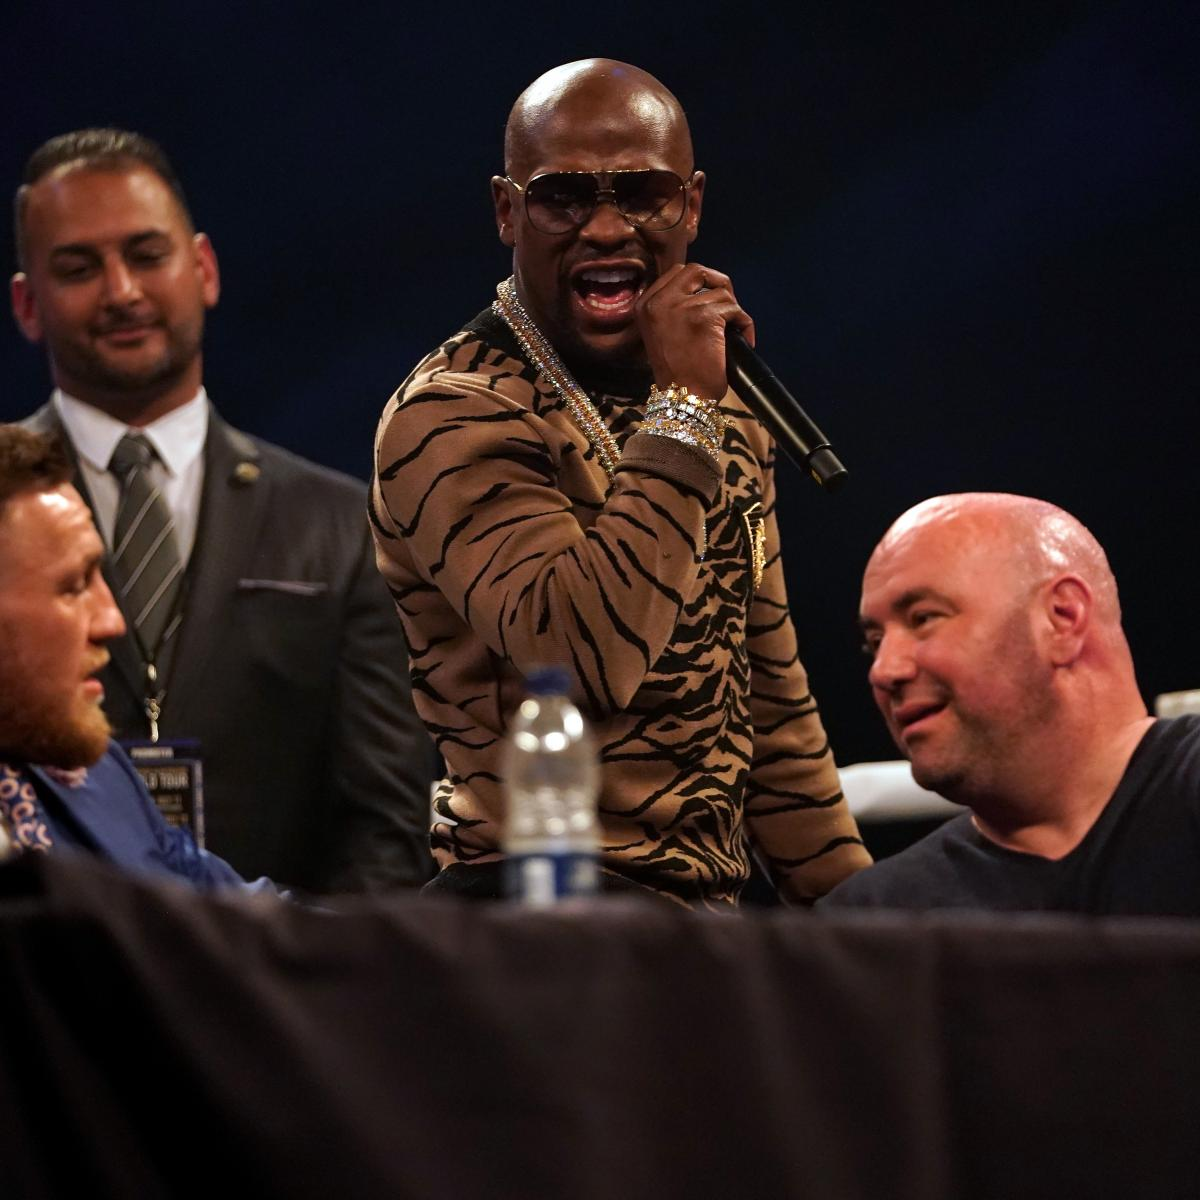 Mayweather Vs. McGregor Undercard: 2 Title Fights Among